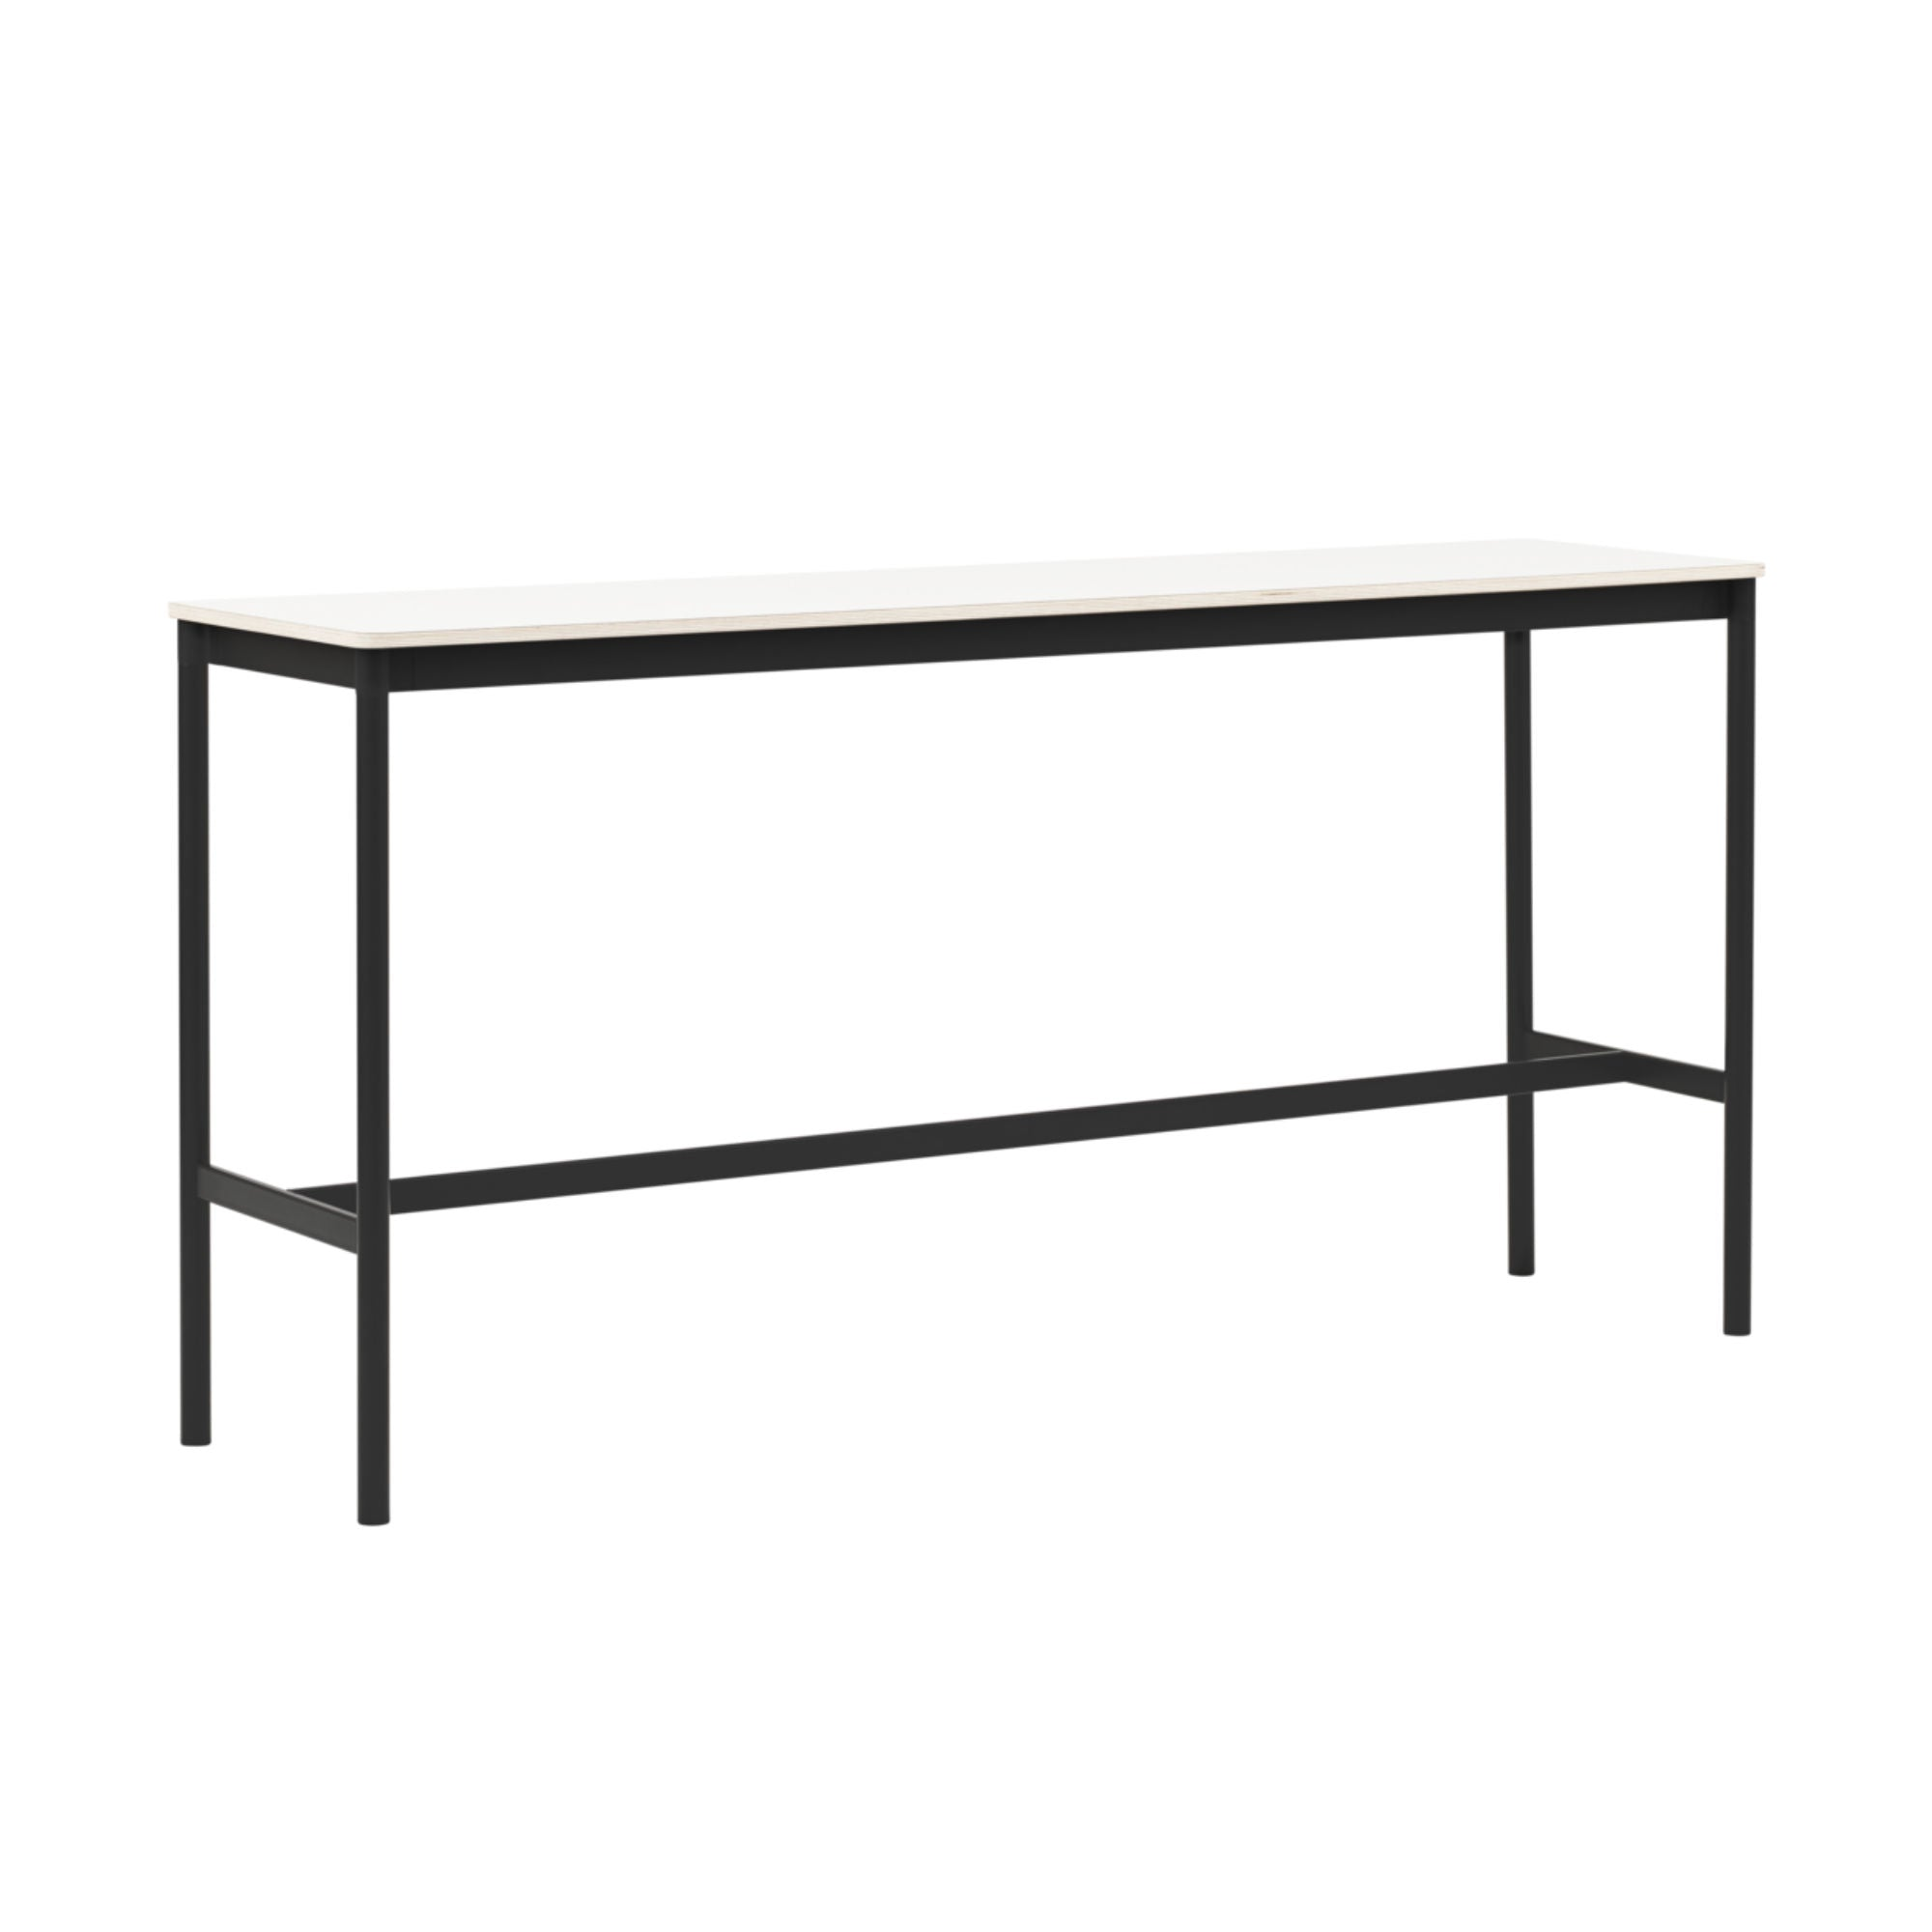 Muuto Base High Table 190x50 h:95cm , White Laminate/Plywood/ Black